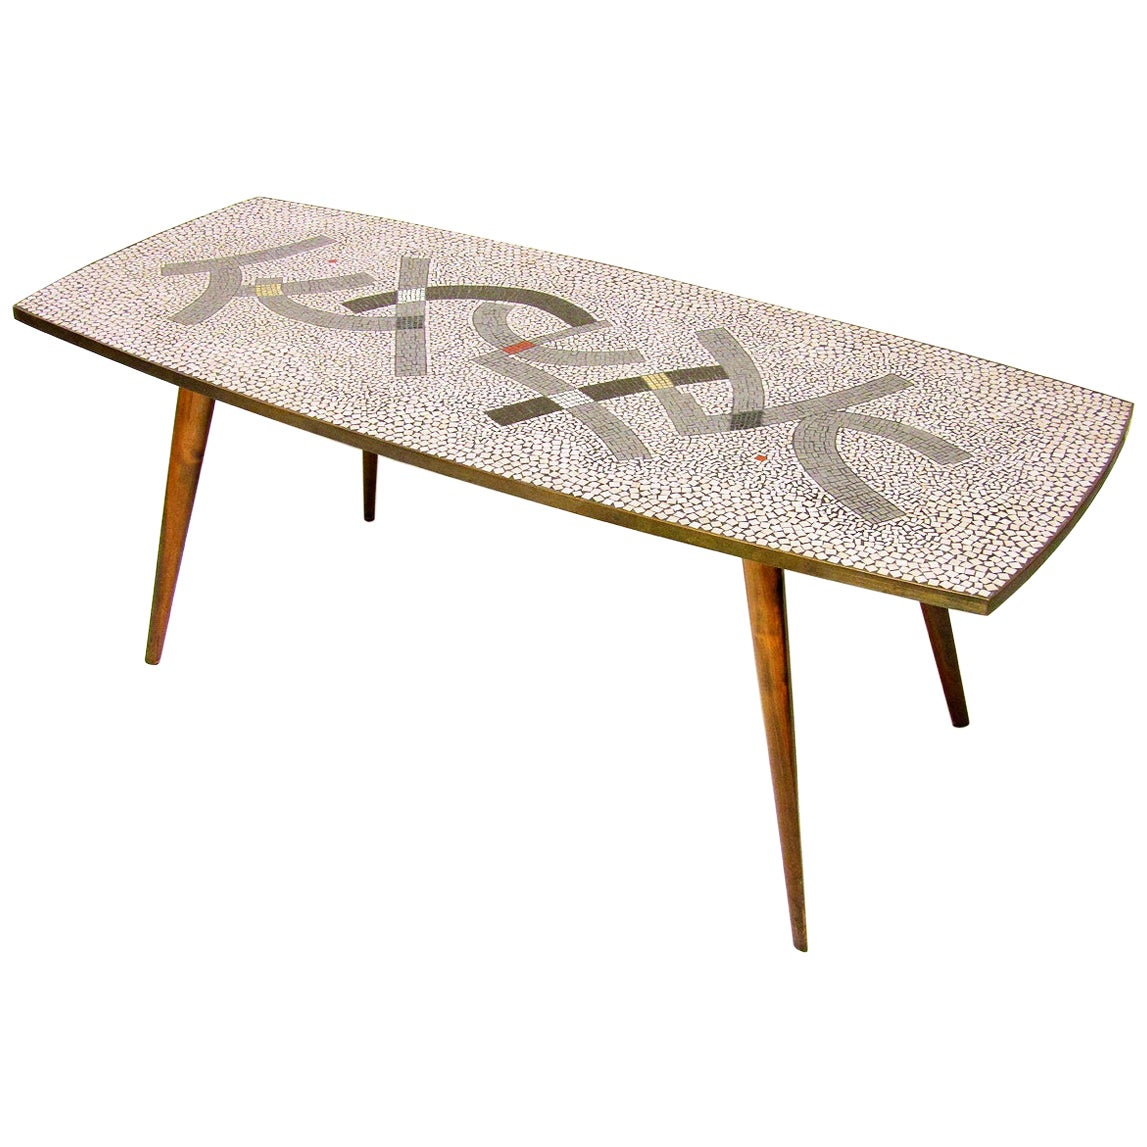 Large Modernist 1950s Mosaic Coffee Table by Berthold Muller